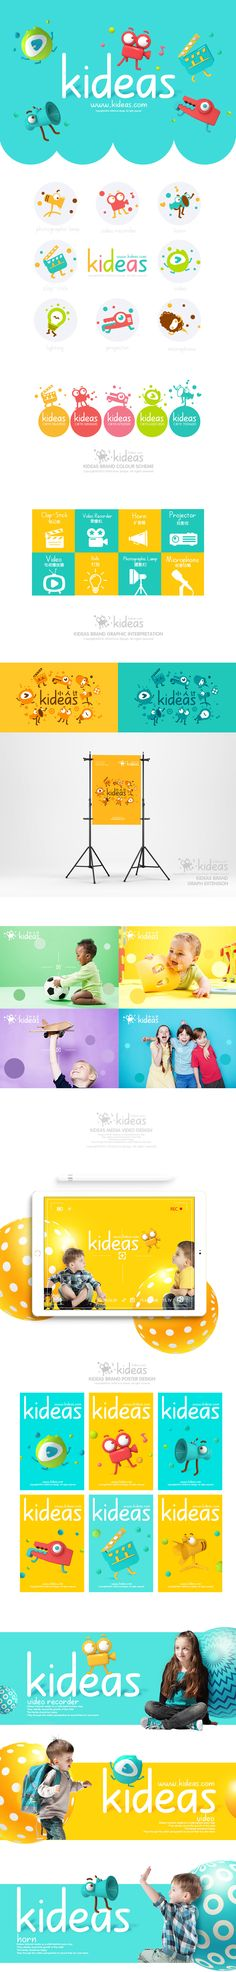 Kideas Internet Parent&Child&Kids from media brand VI on Behance